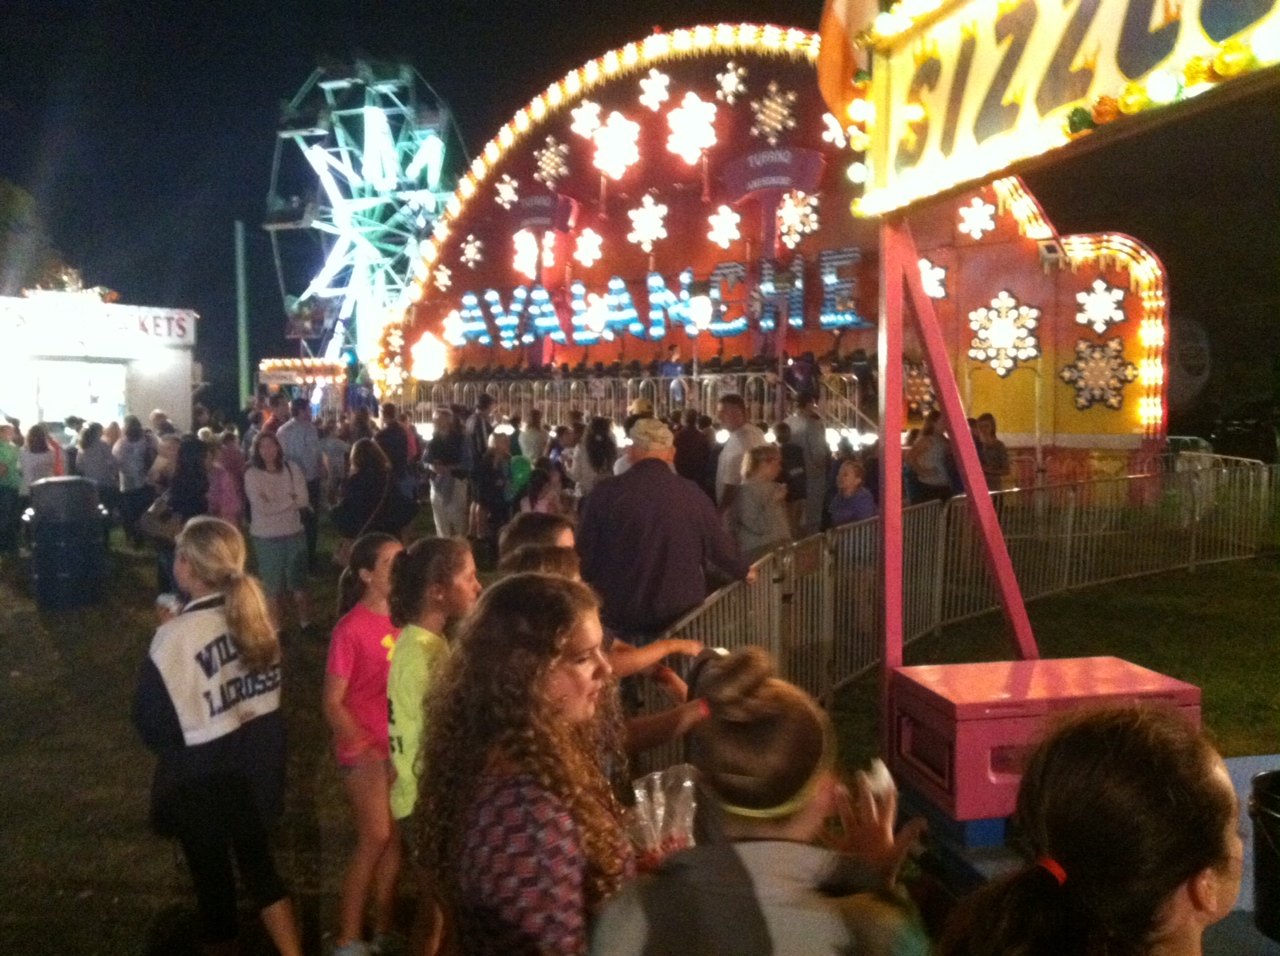 Rotary Carnival Promises Weekend Fun in Support of Local Community Projects